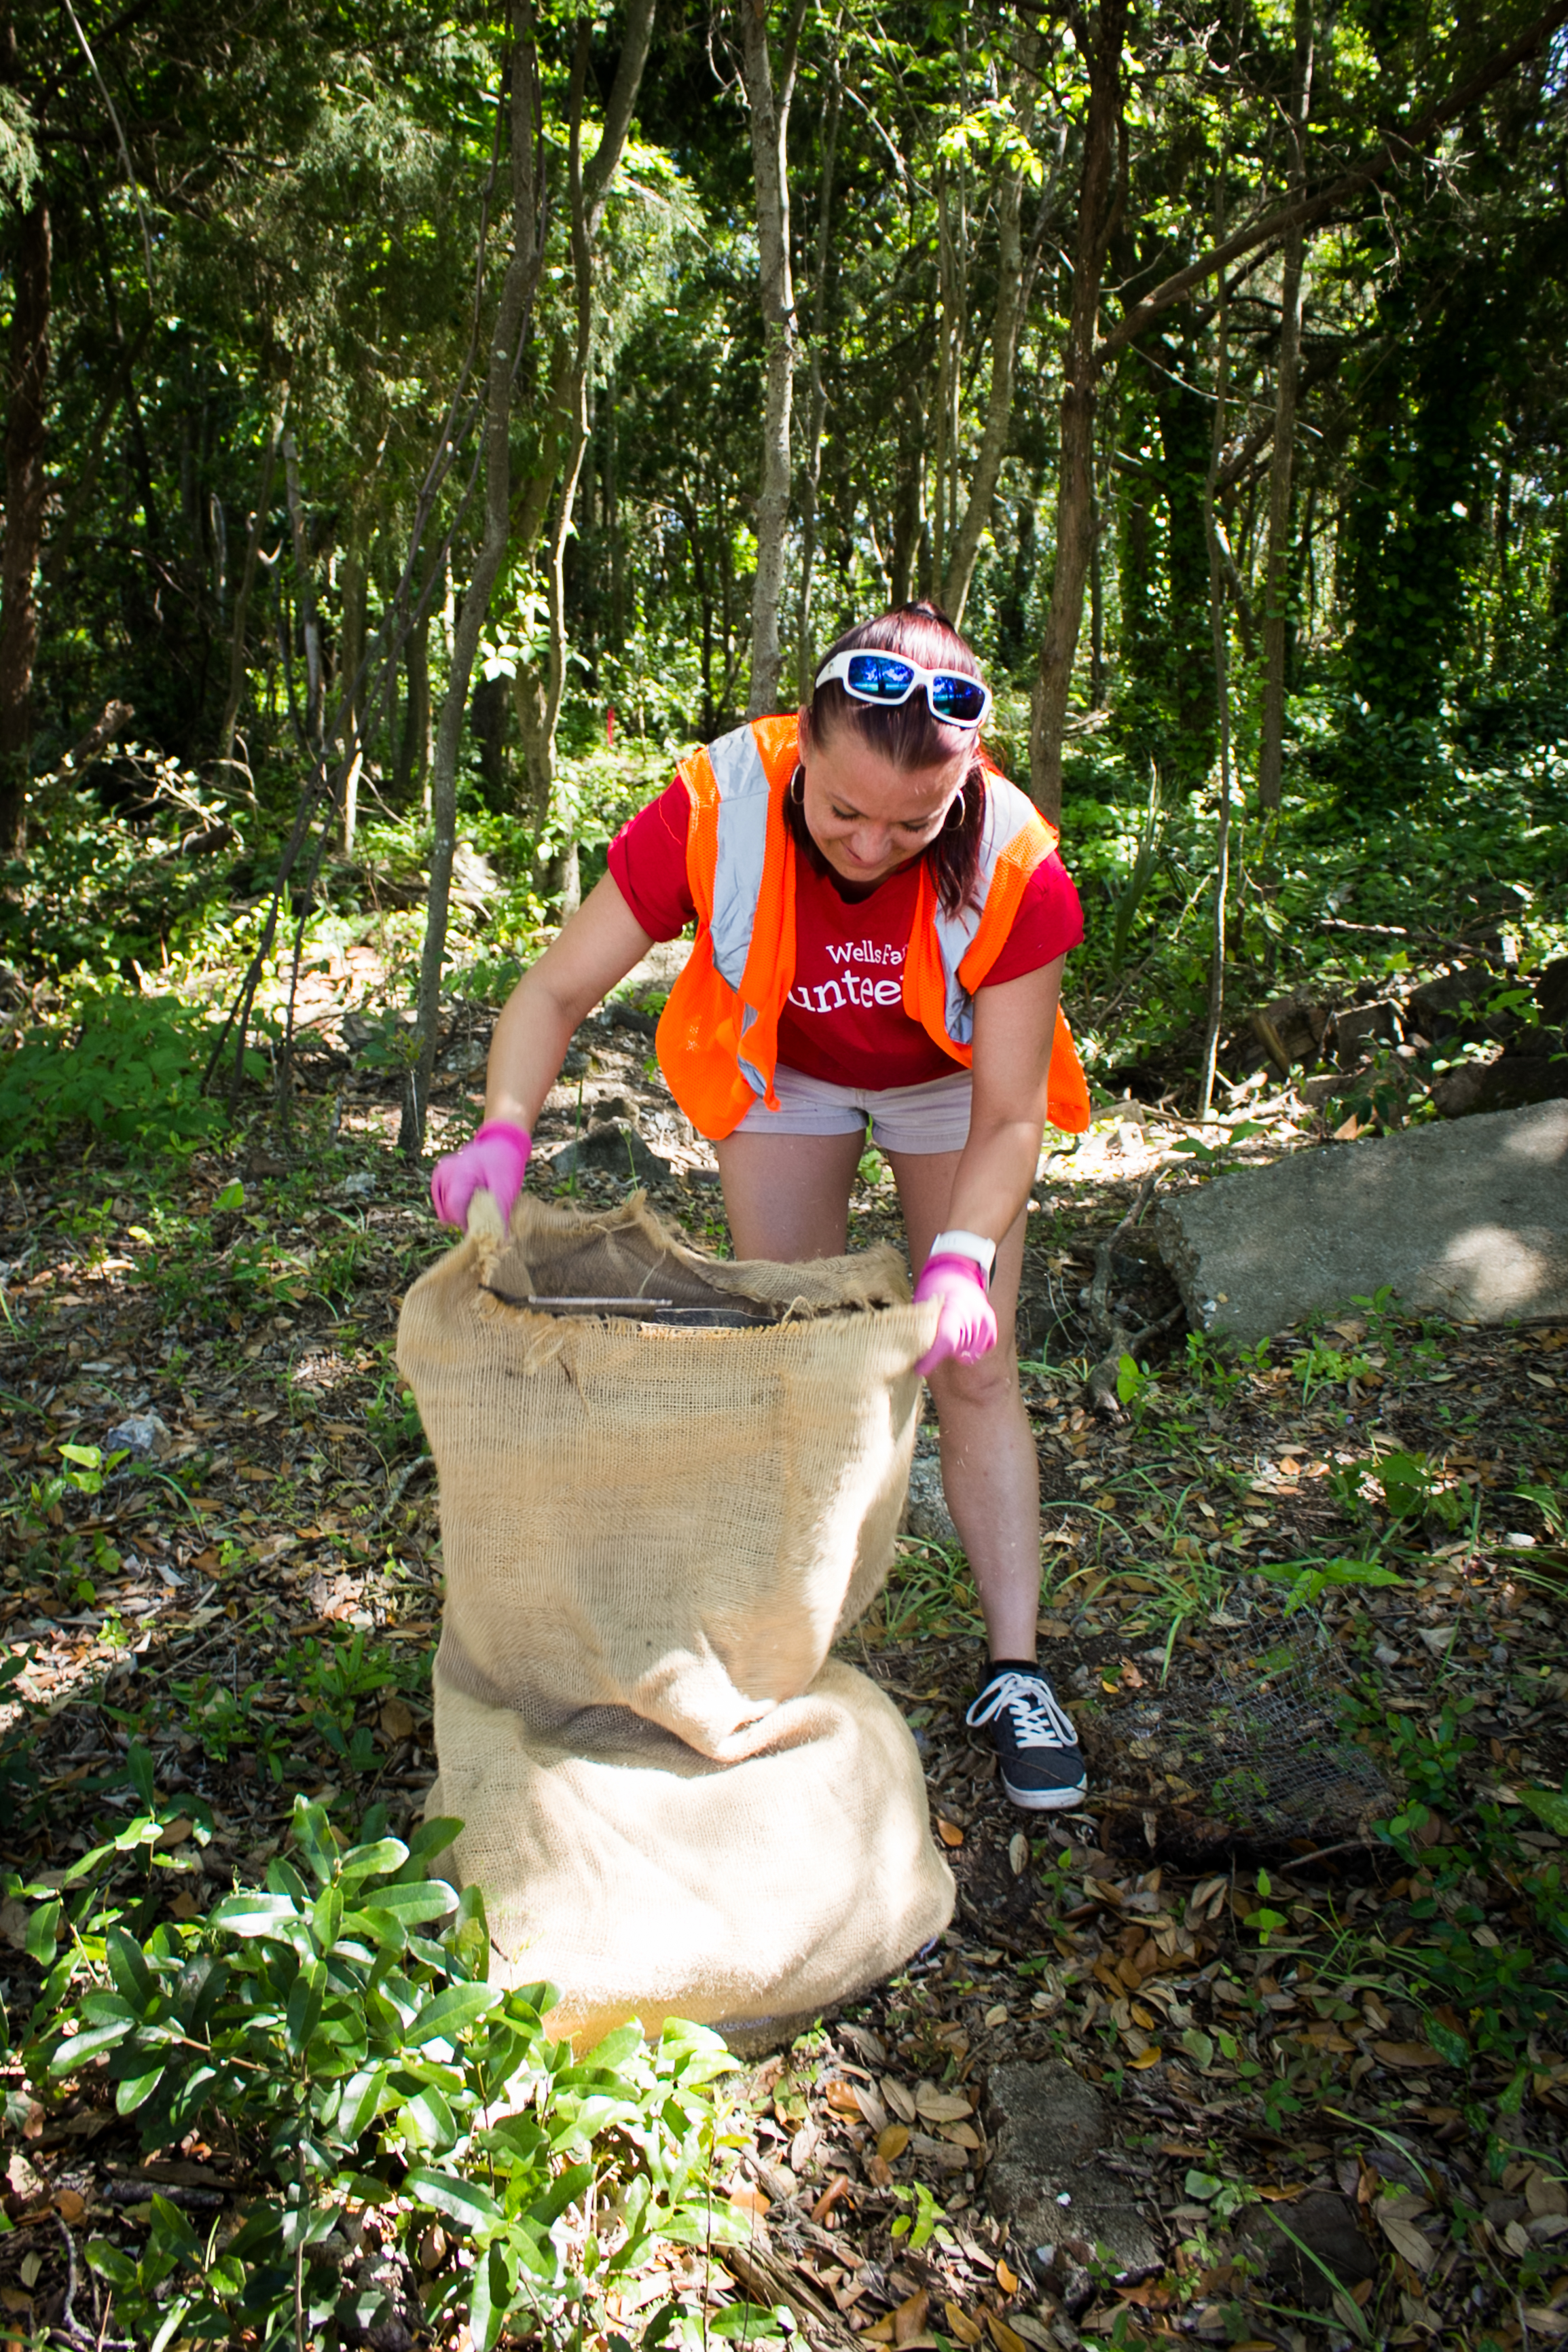 A volunteer bags litter at a local clean up. (Photo: Kaitlyn Hackathorn/SCDNR)